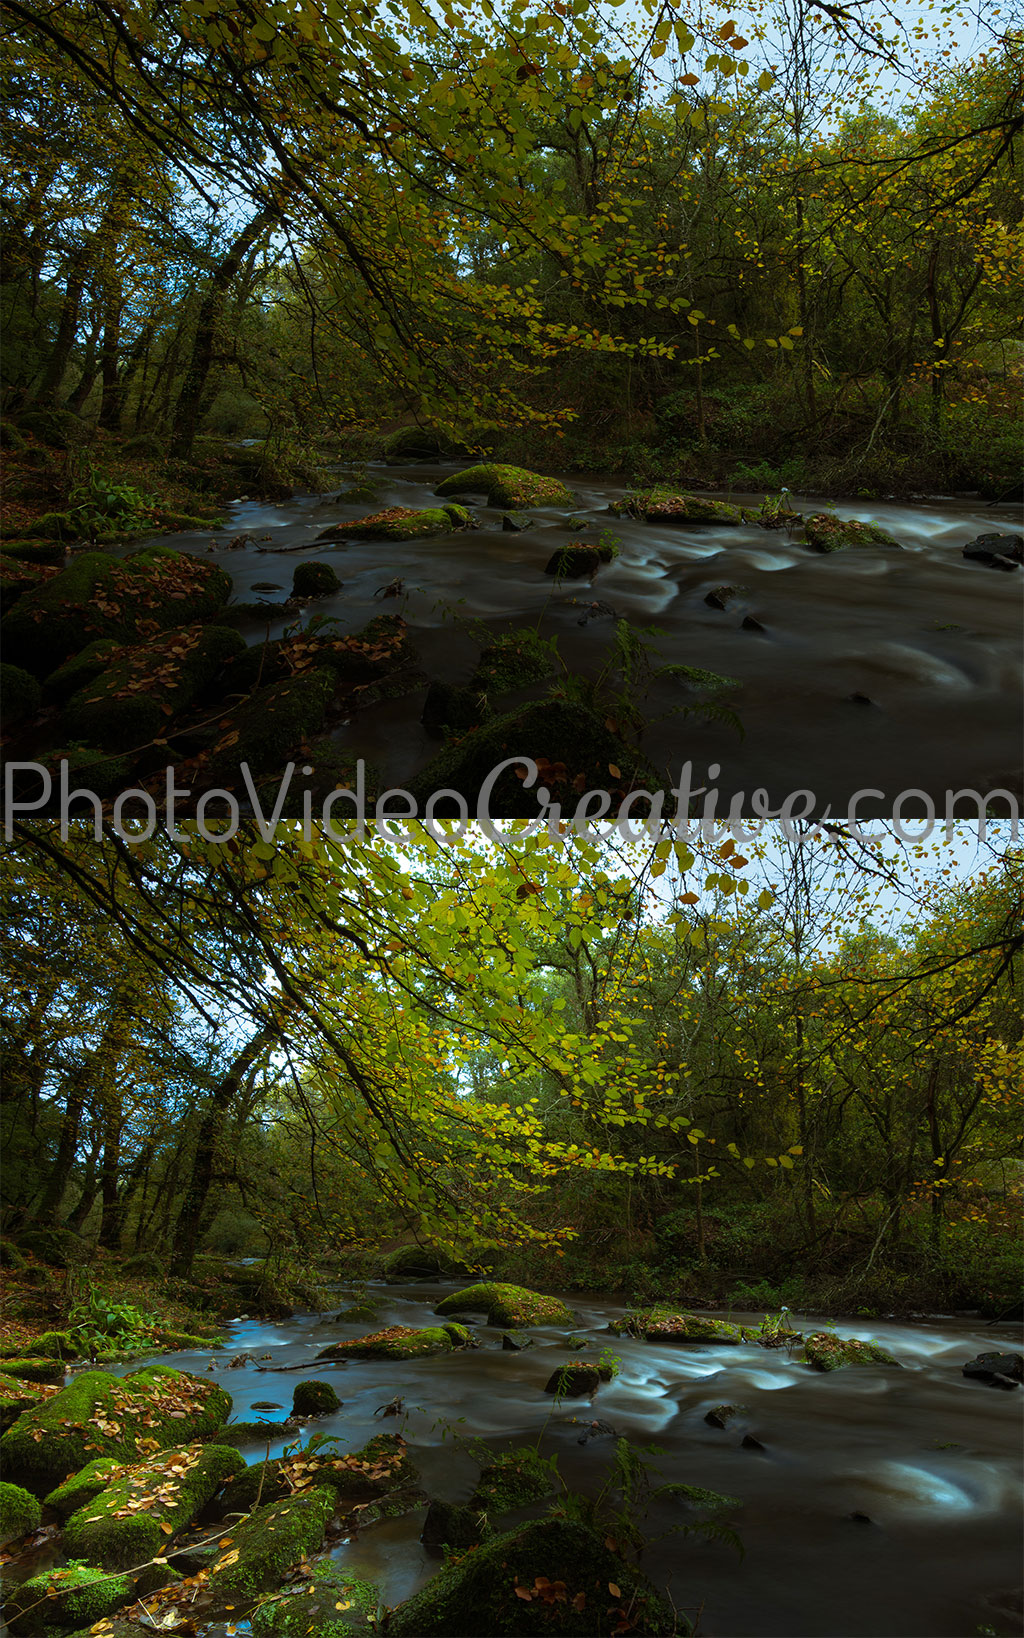 Local high key tonalities applied at photo development - Before and After